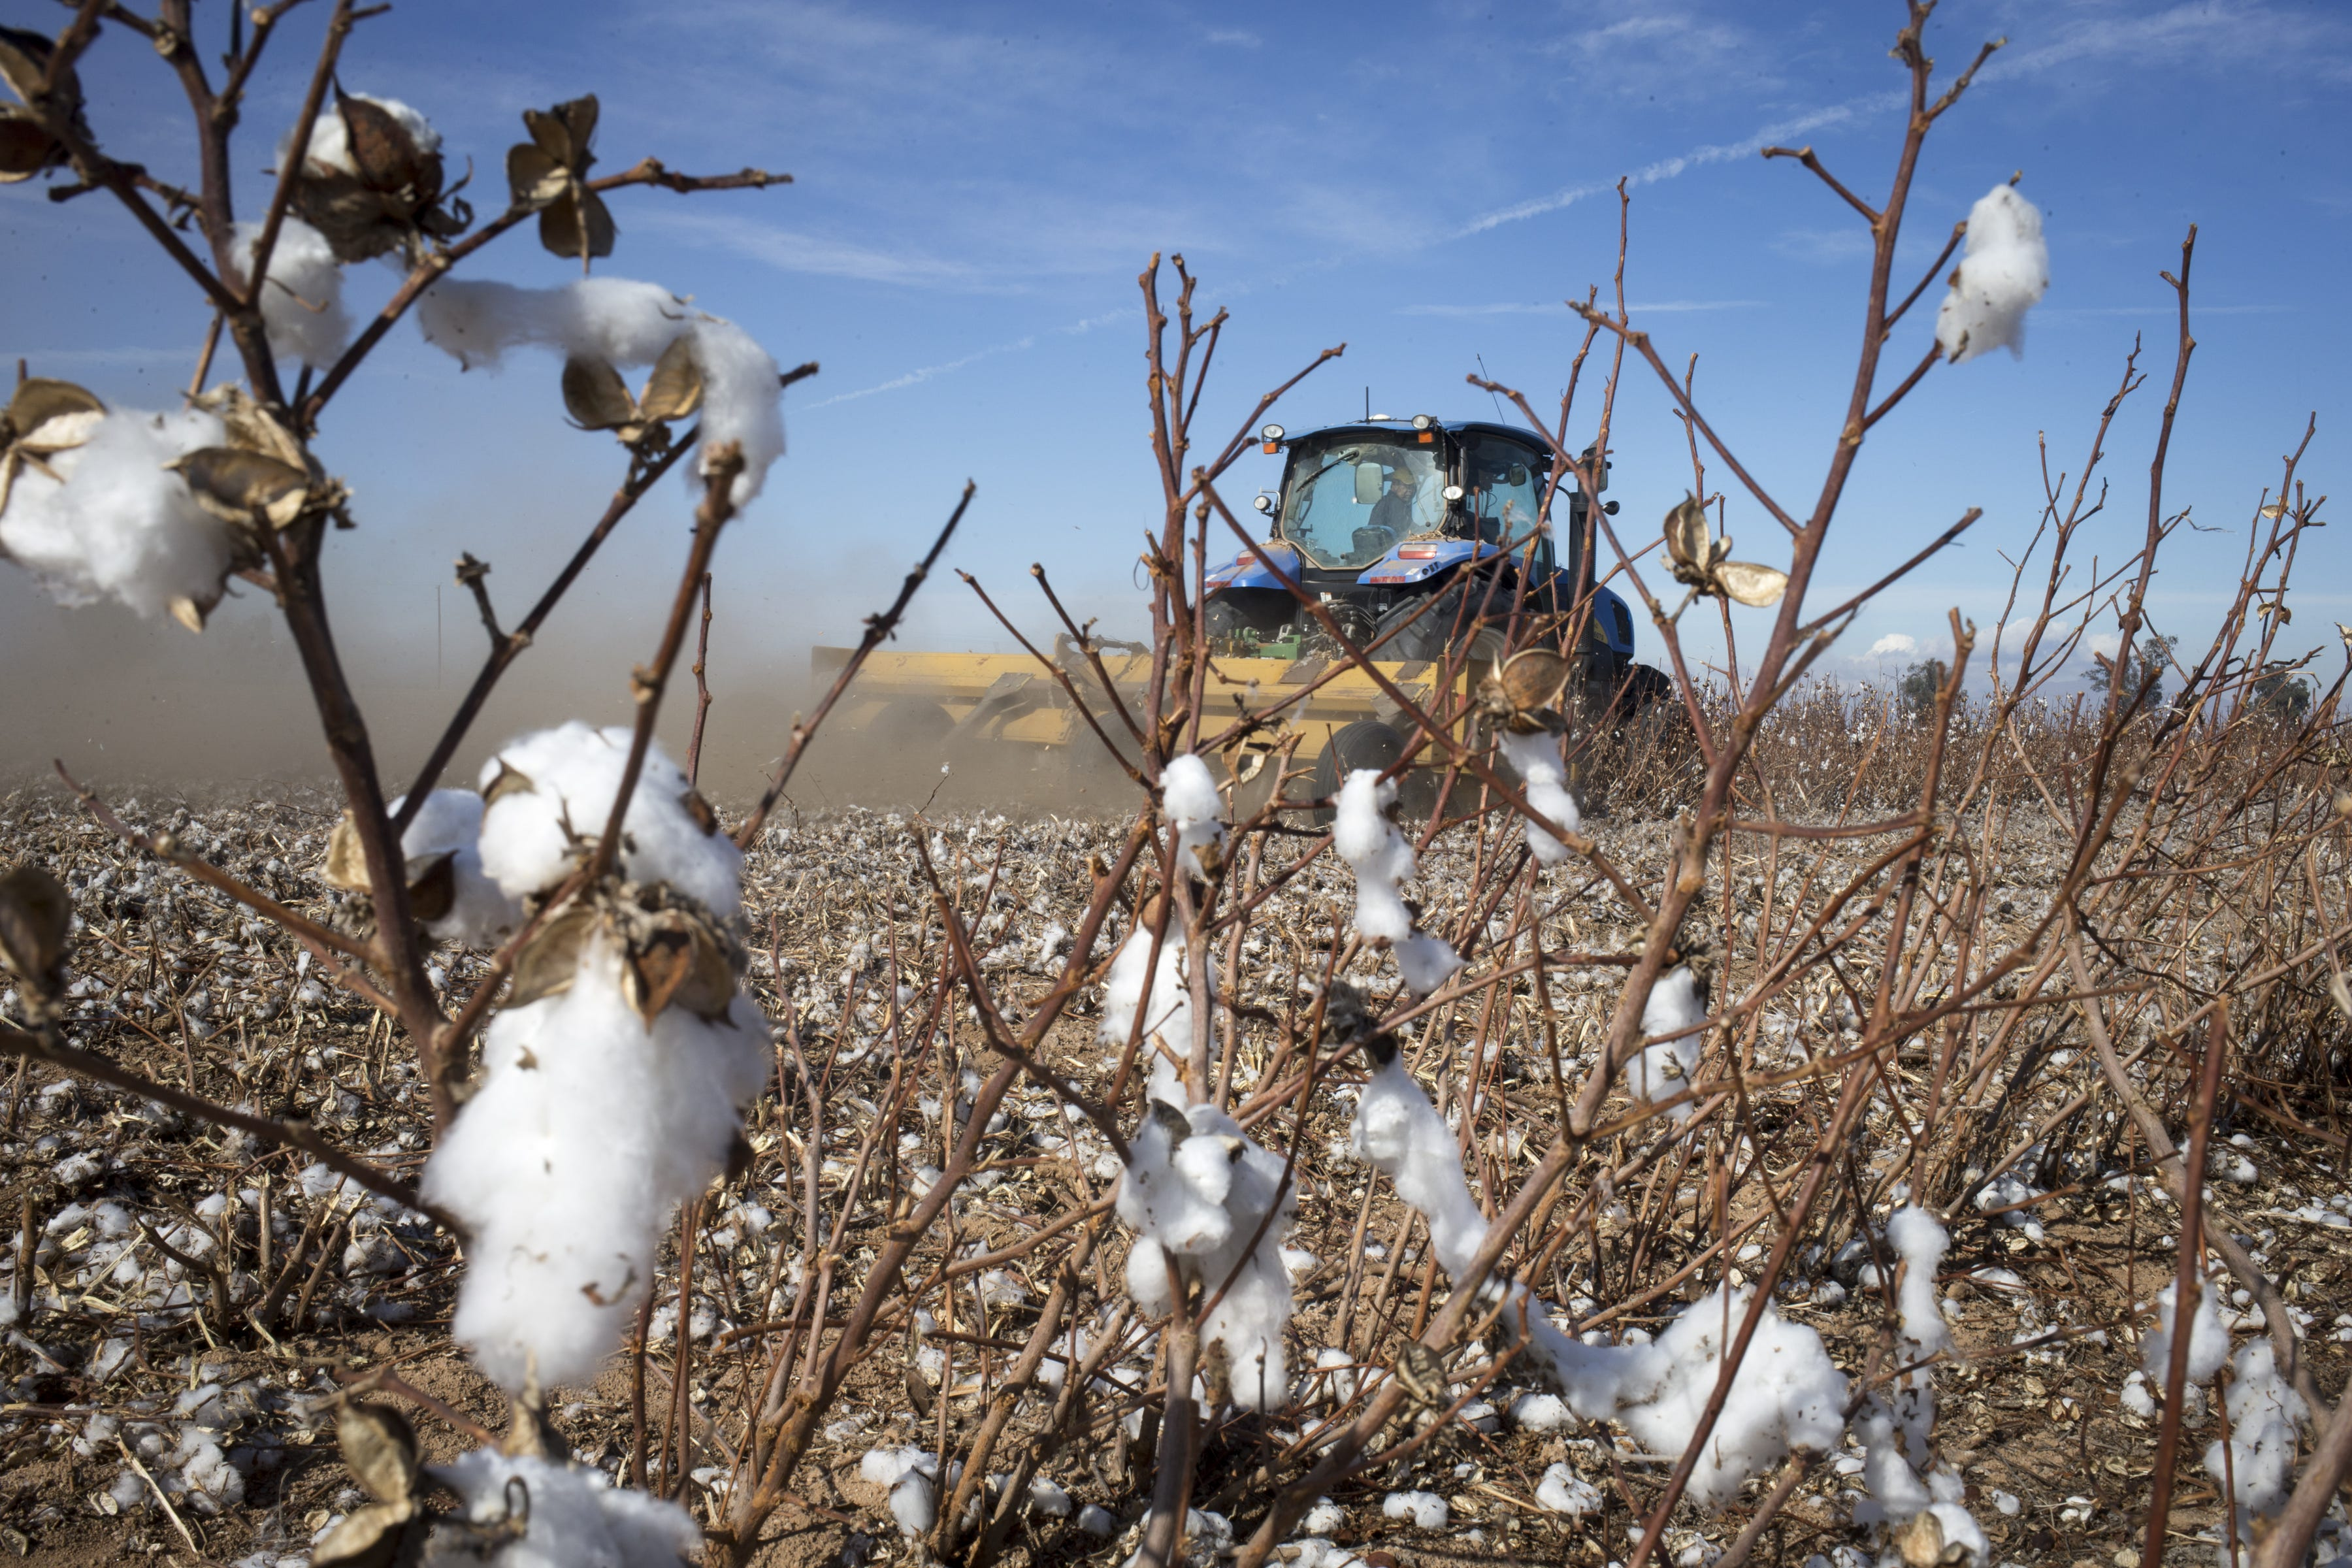 A tractor chops down stalks of cotton plants after the harvest on Jan. 16, 2019, in a field on the Thelander family's farm south of Maricopa, Arizona.